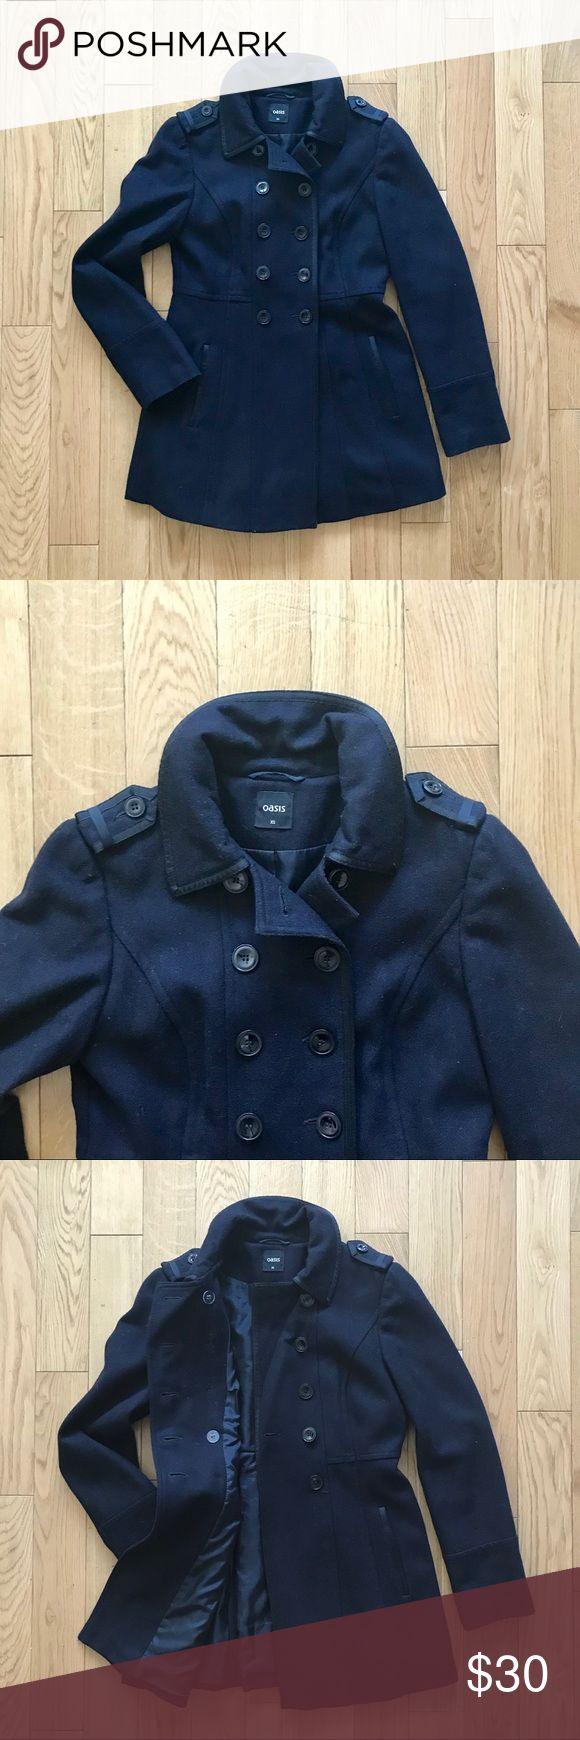 Oasis Black Double Breasted Pea Coat Wool Fits S Oasis double breasted wool winter pea coat. Black women's size XS, but it fits me and I'm normally a small. Flattering flare style. Lined. Trendy details. Great condition! Oasis Jackets & Coats Pea Coats